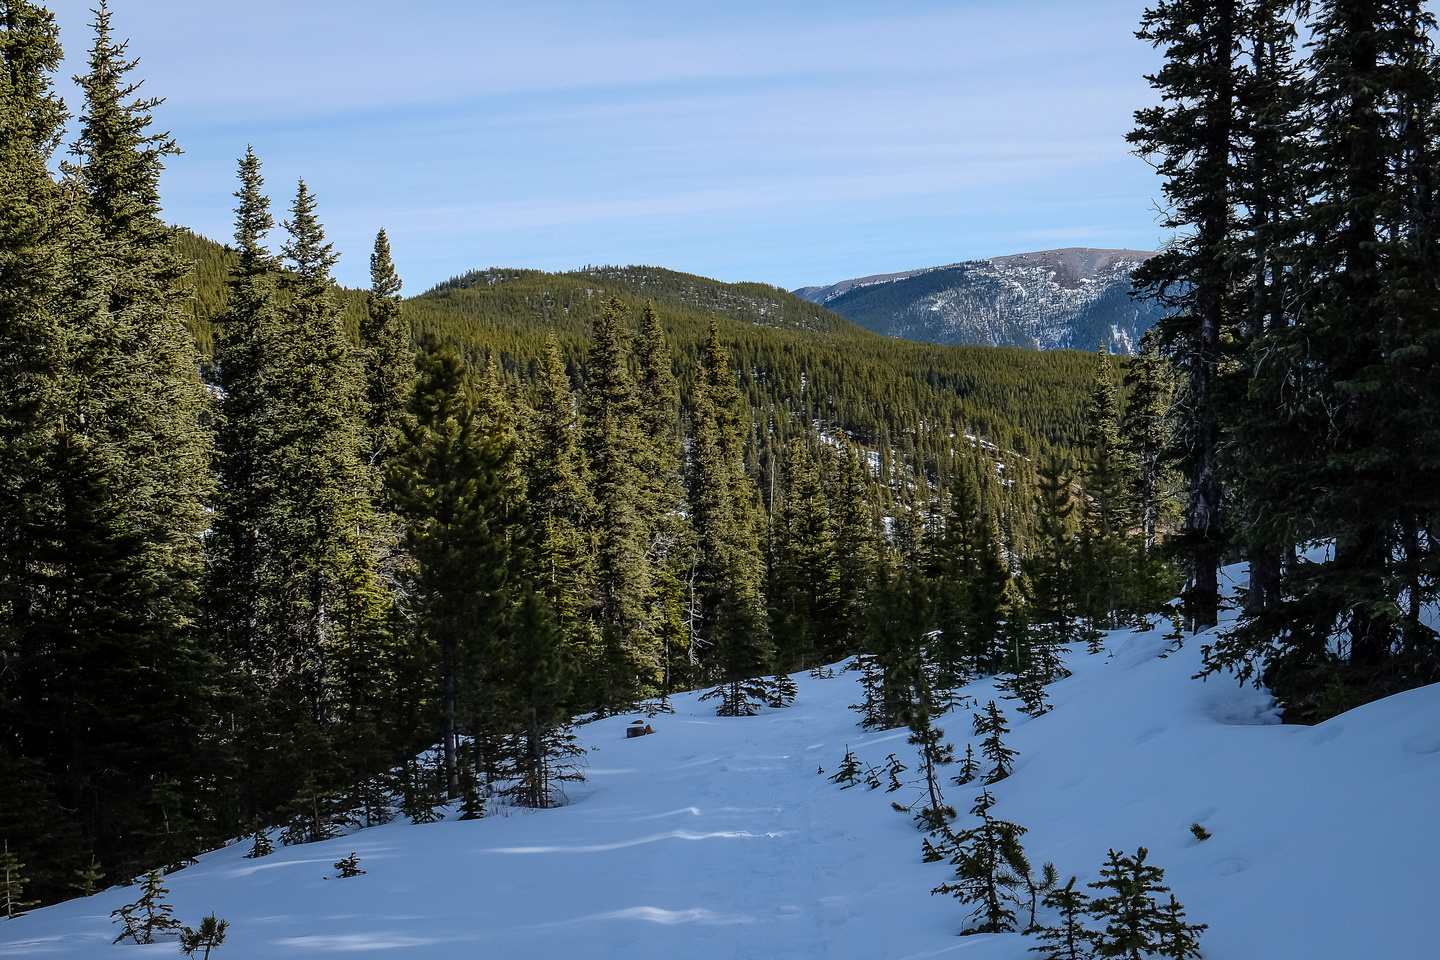 As the trail approached the pass it got steeper. This is looking back at Prairie Mountain.